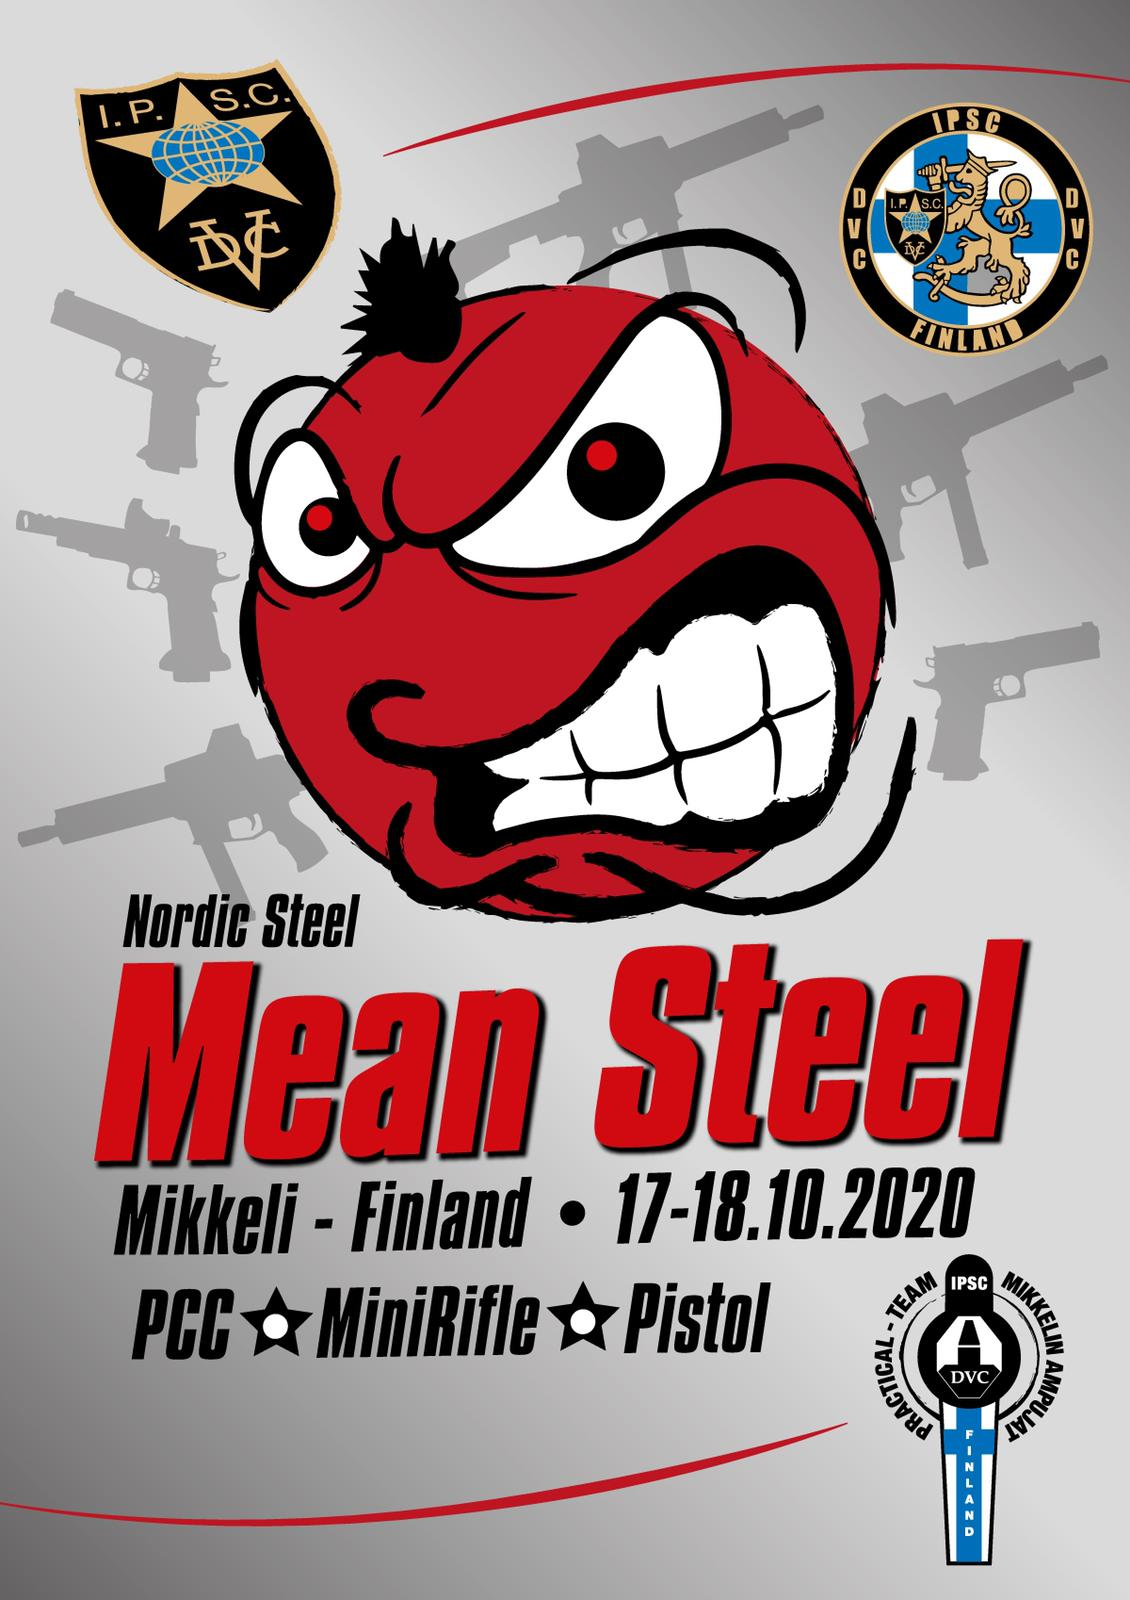 Mean Steel Nordic Championships 2020